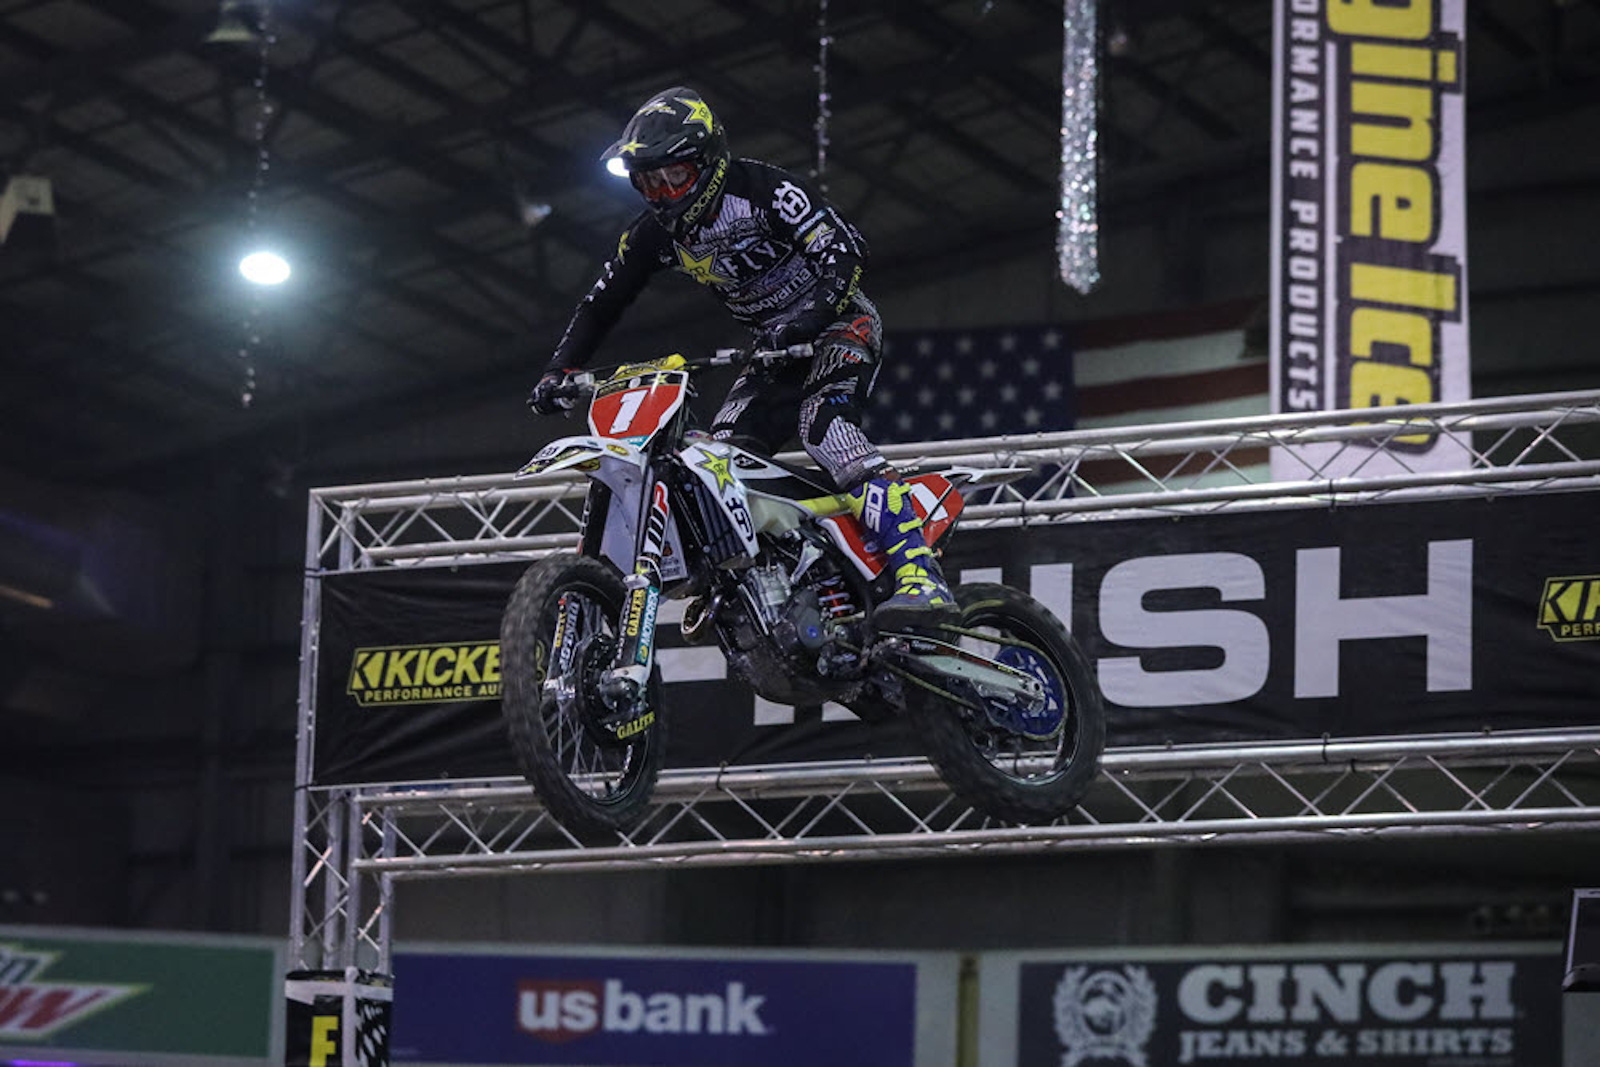 colton_haaker_endurocross_2019_denver_560